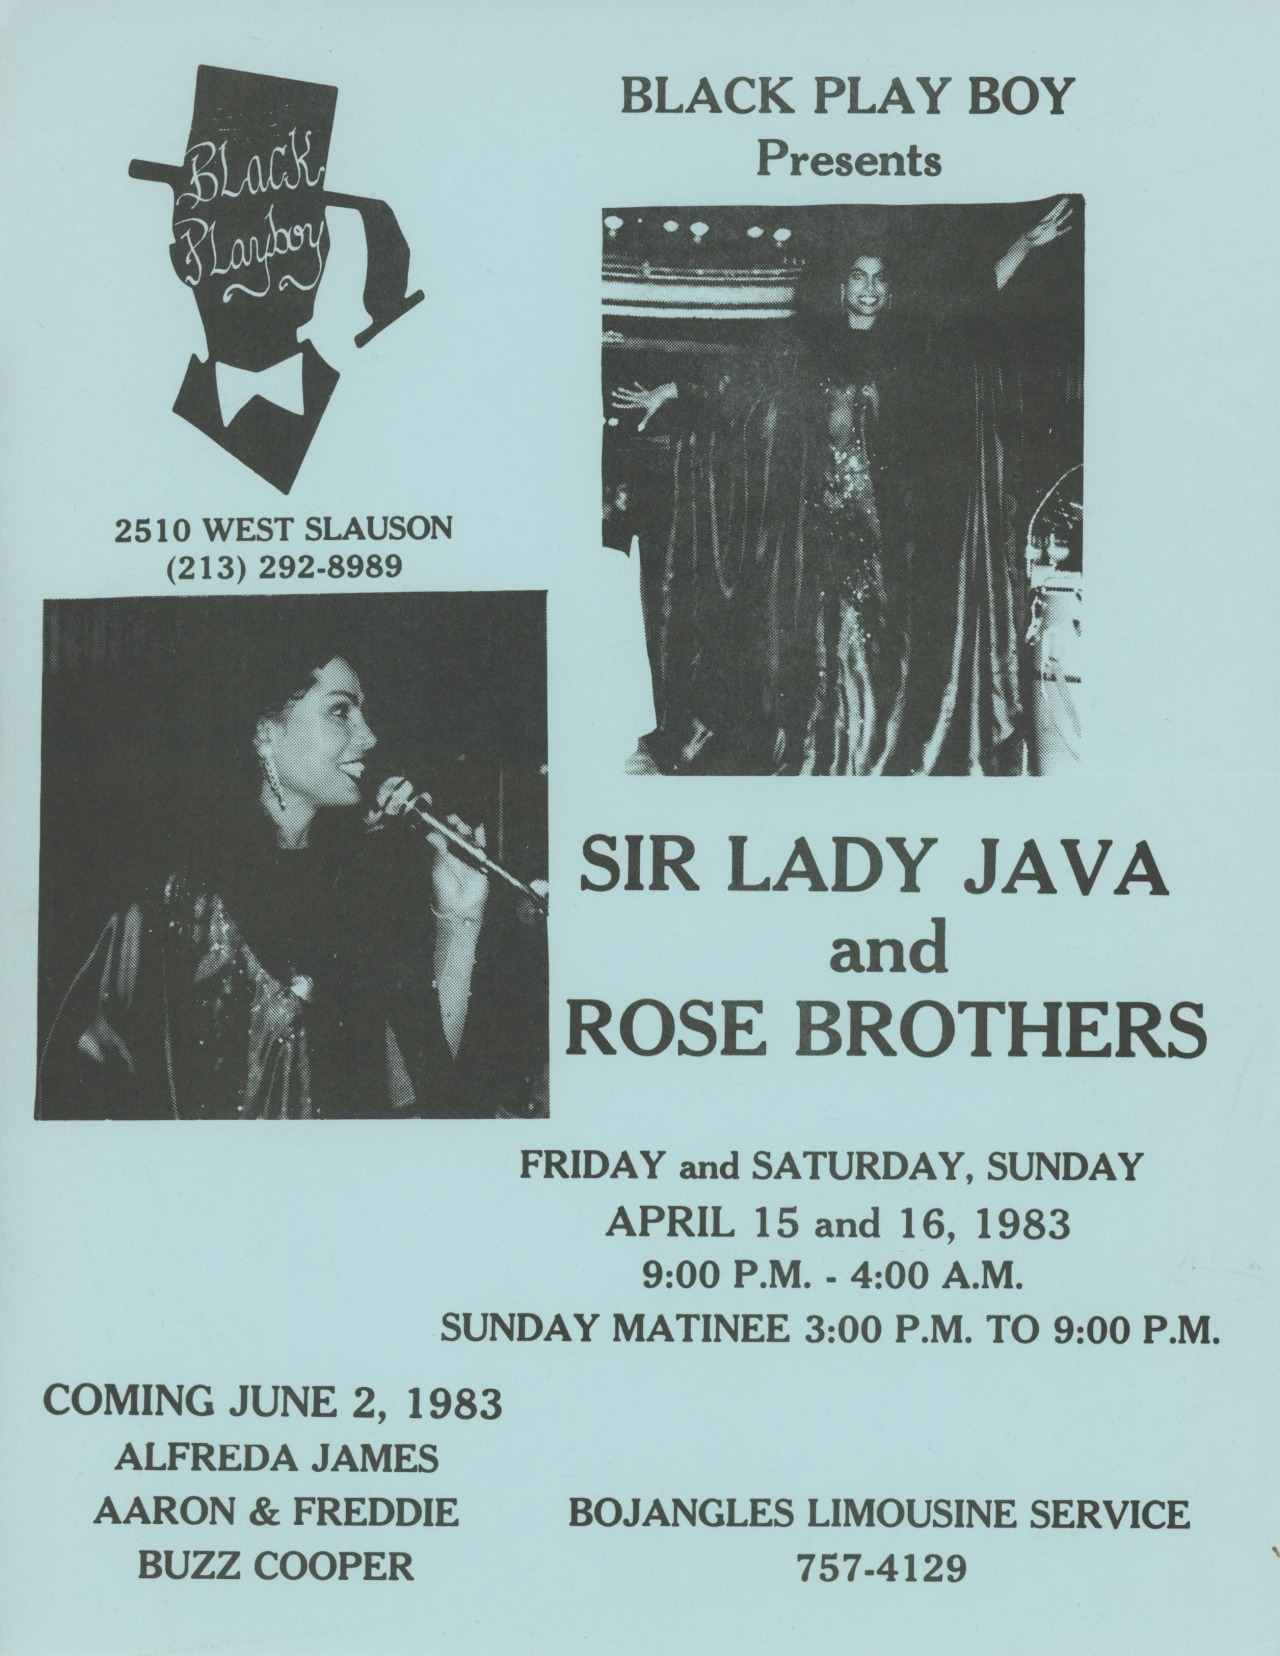 Sir Lady Java at the Black Playboy Club, April 15, 1983.